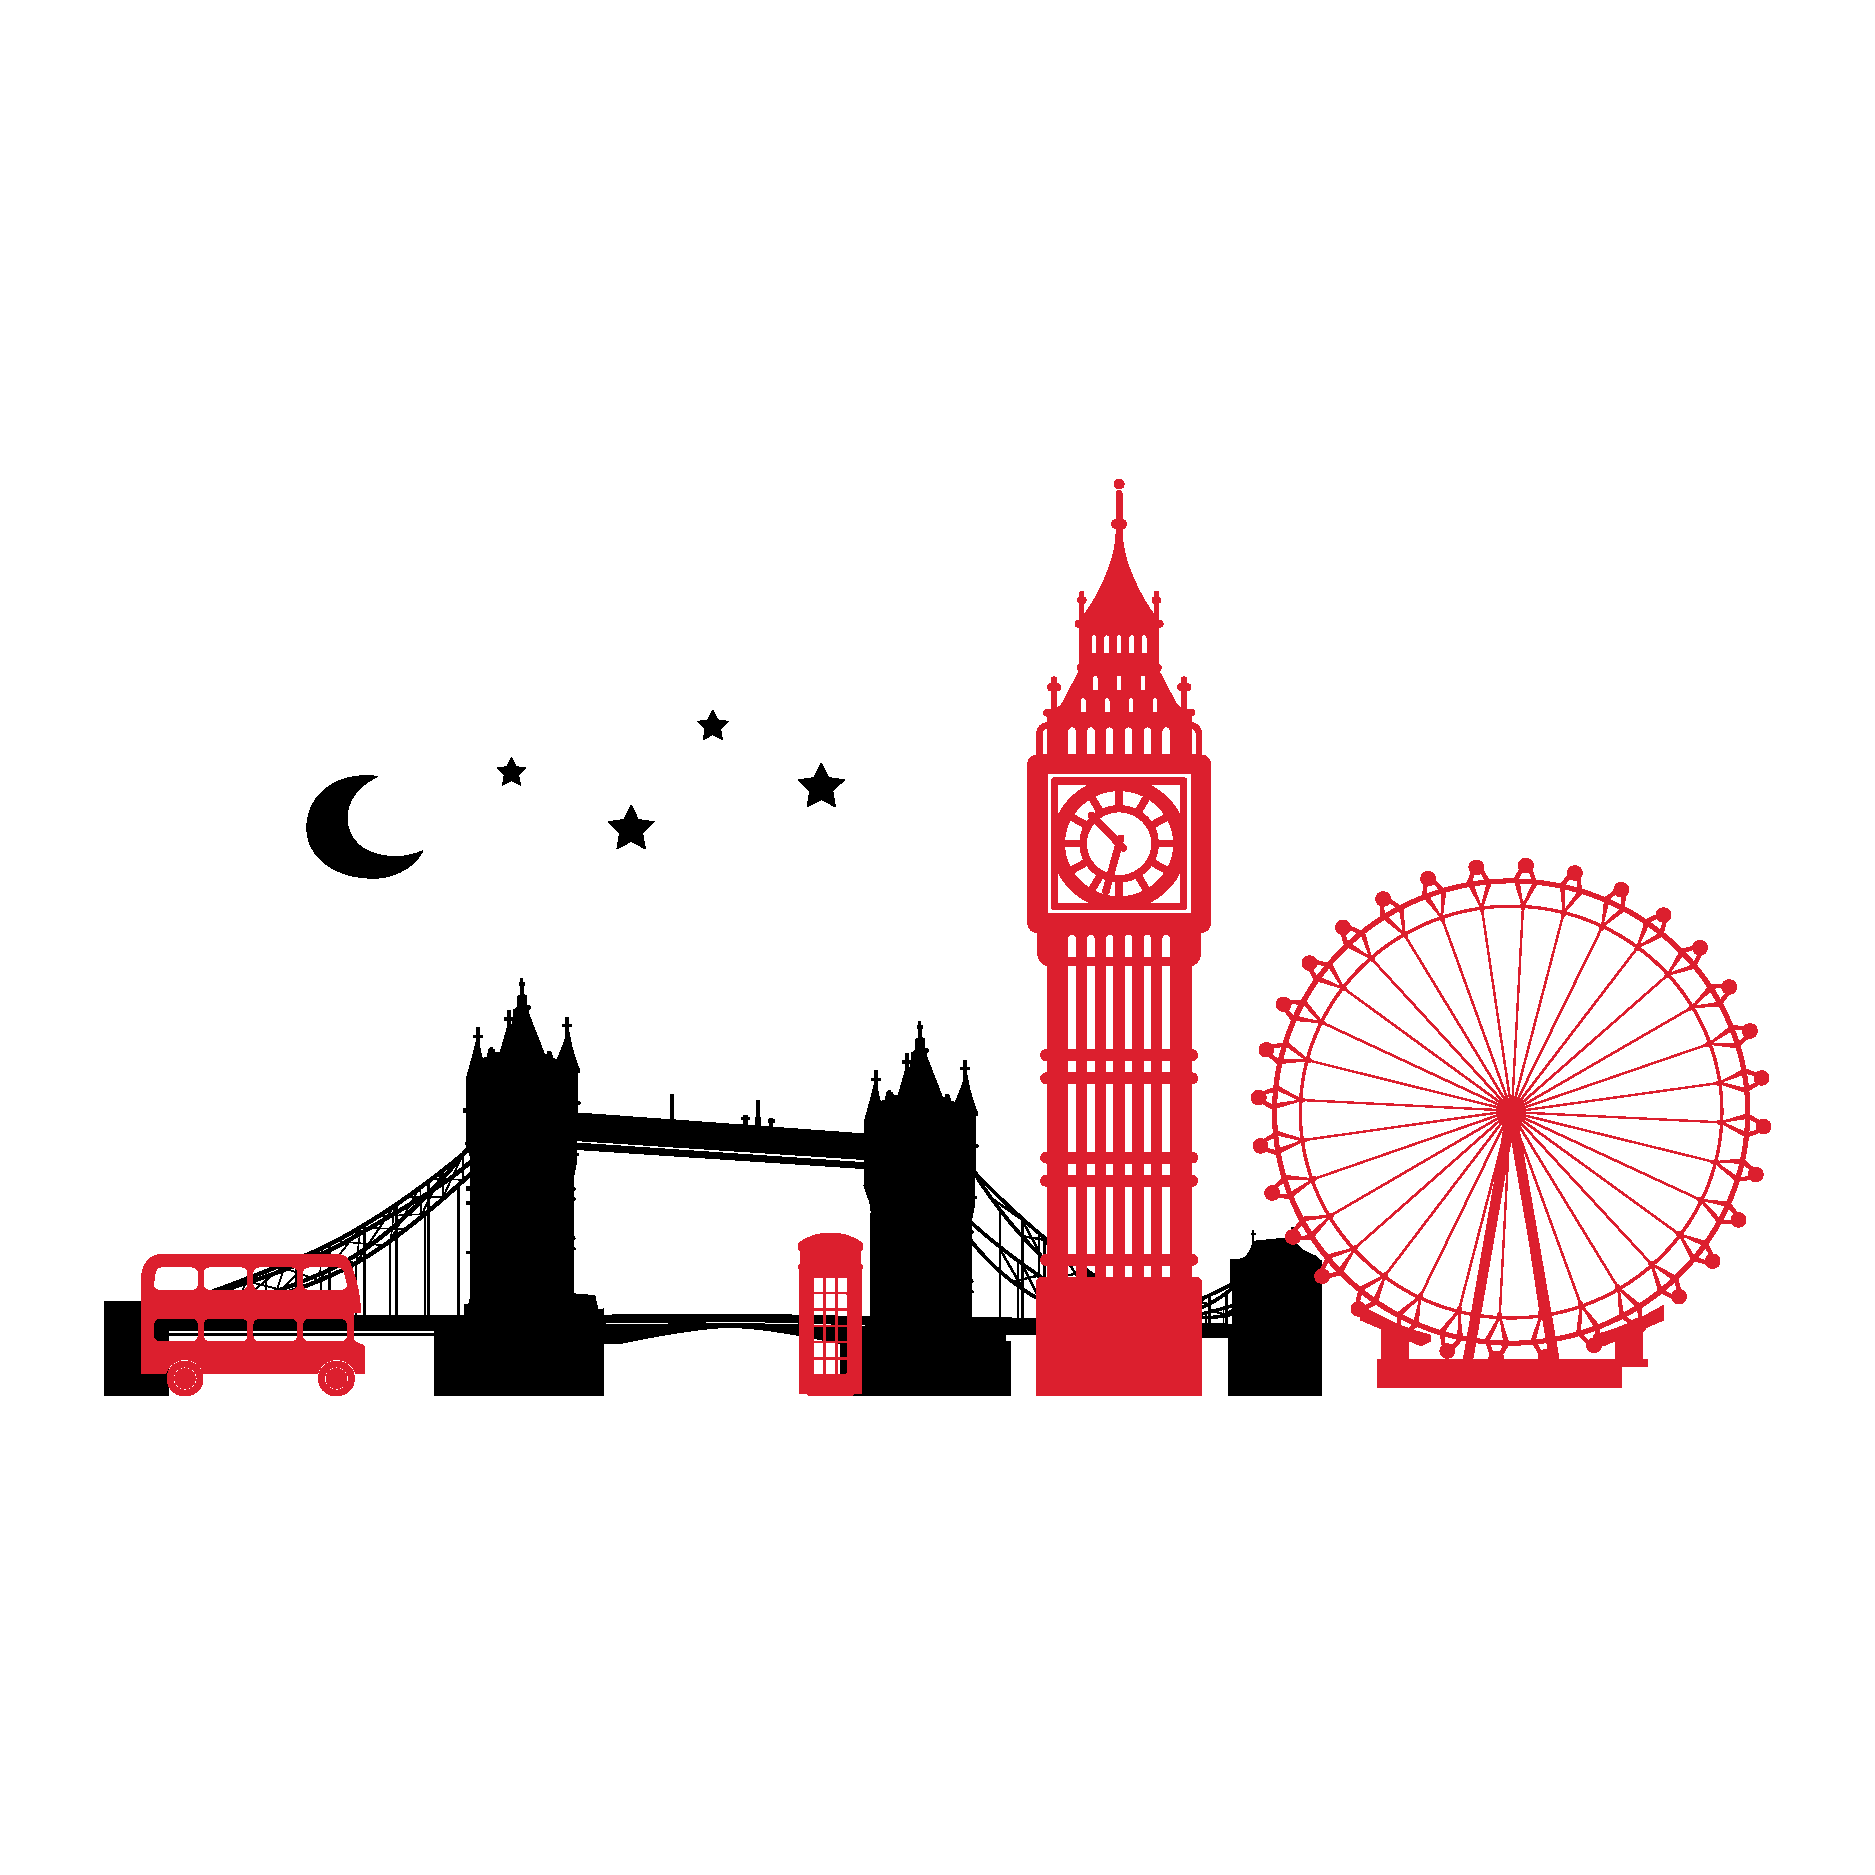 Skyline clipart clock london. Tattoos google search pinterest